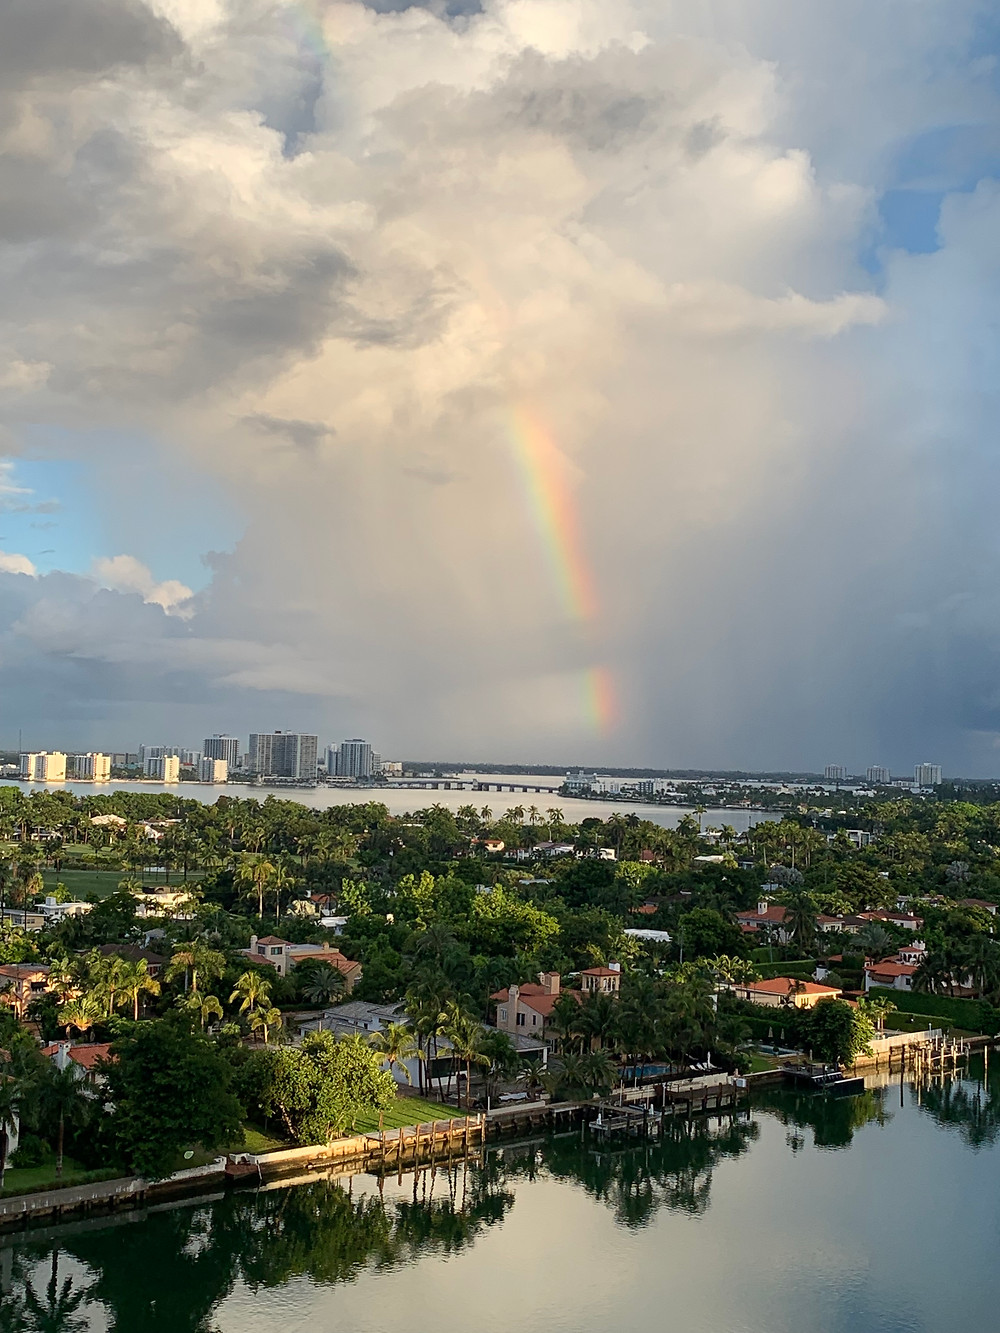 The S-Team celebrates the rainbow, a symbol of new beginnings, especially in real estate.